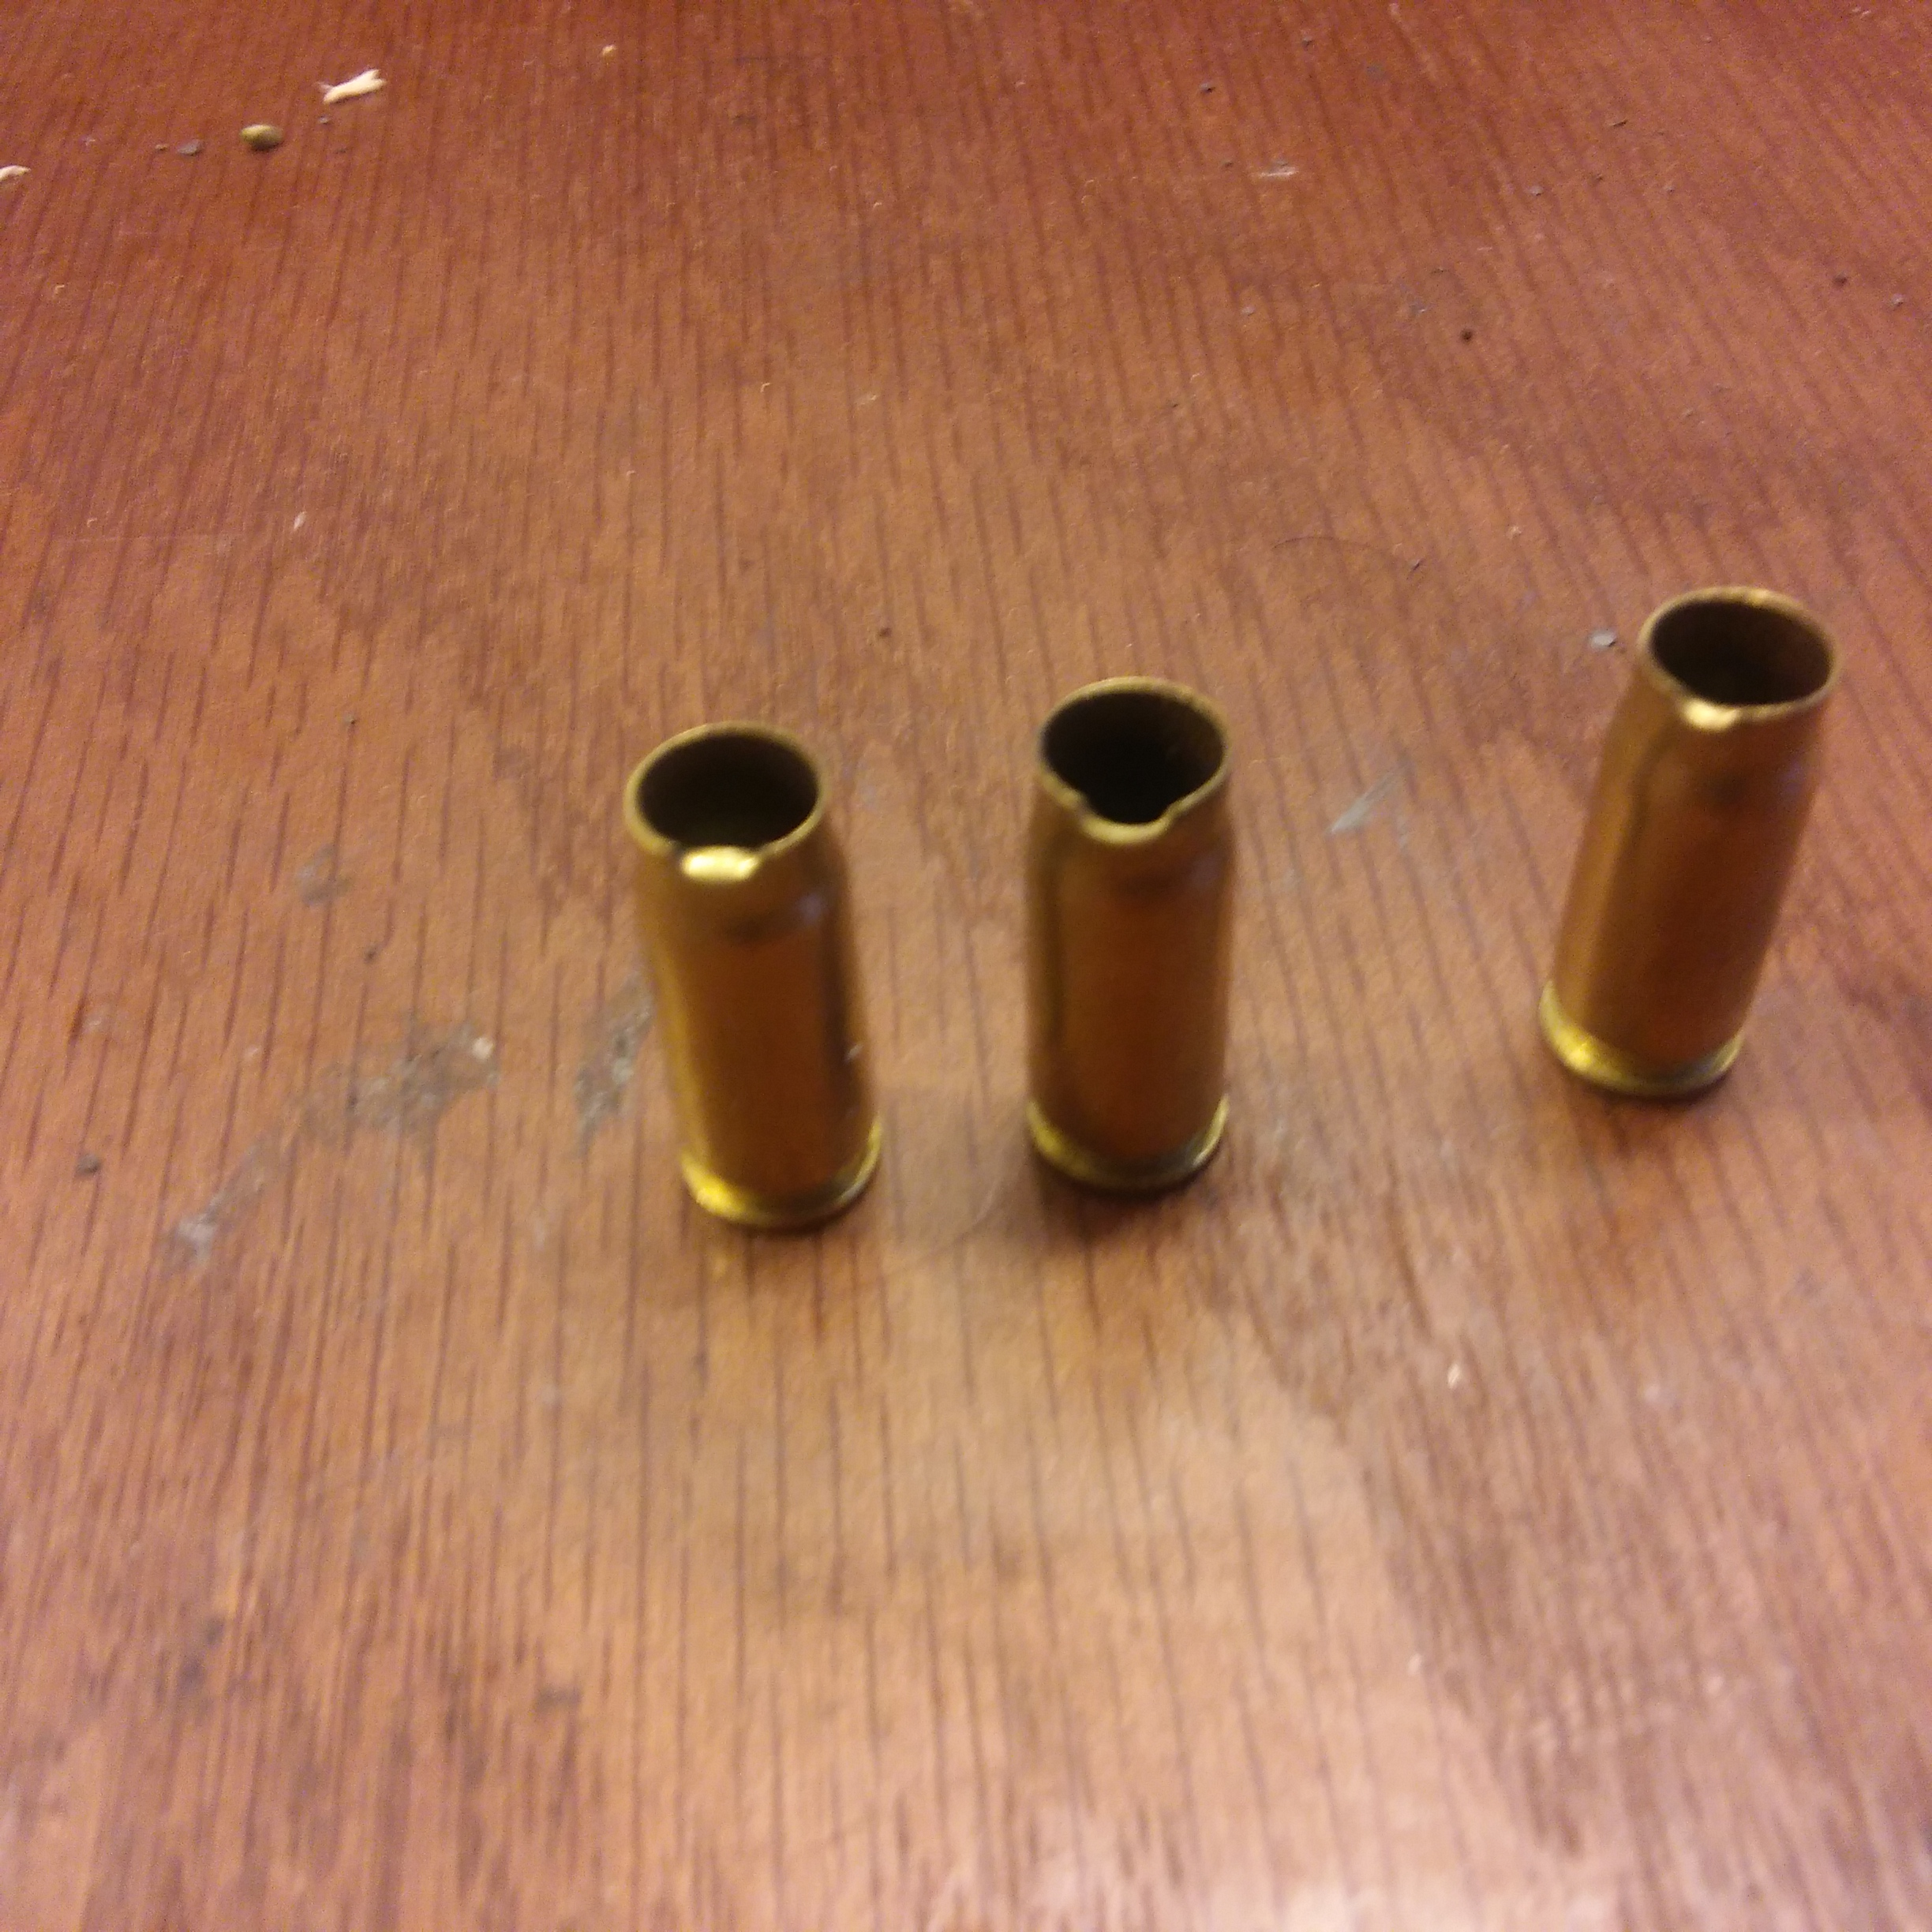 Tokarev reloading problem | The Firearms Forum - The Buying